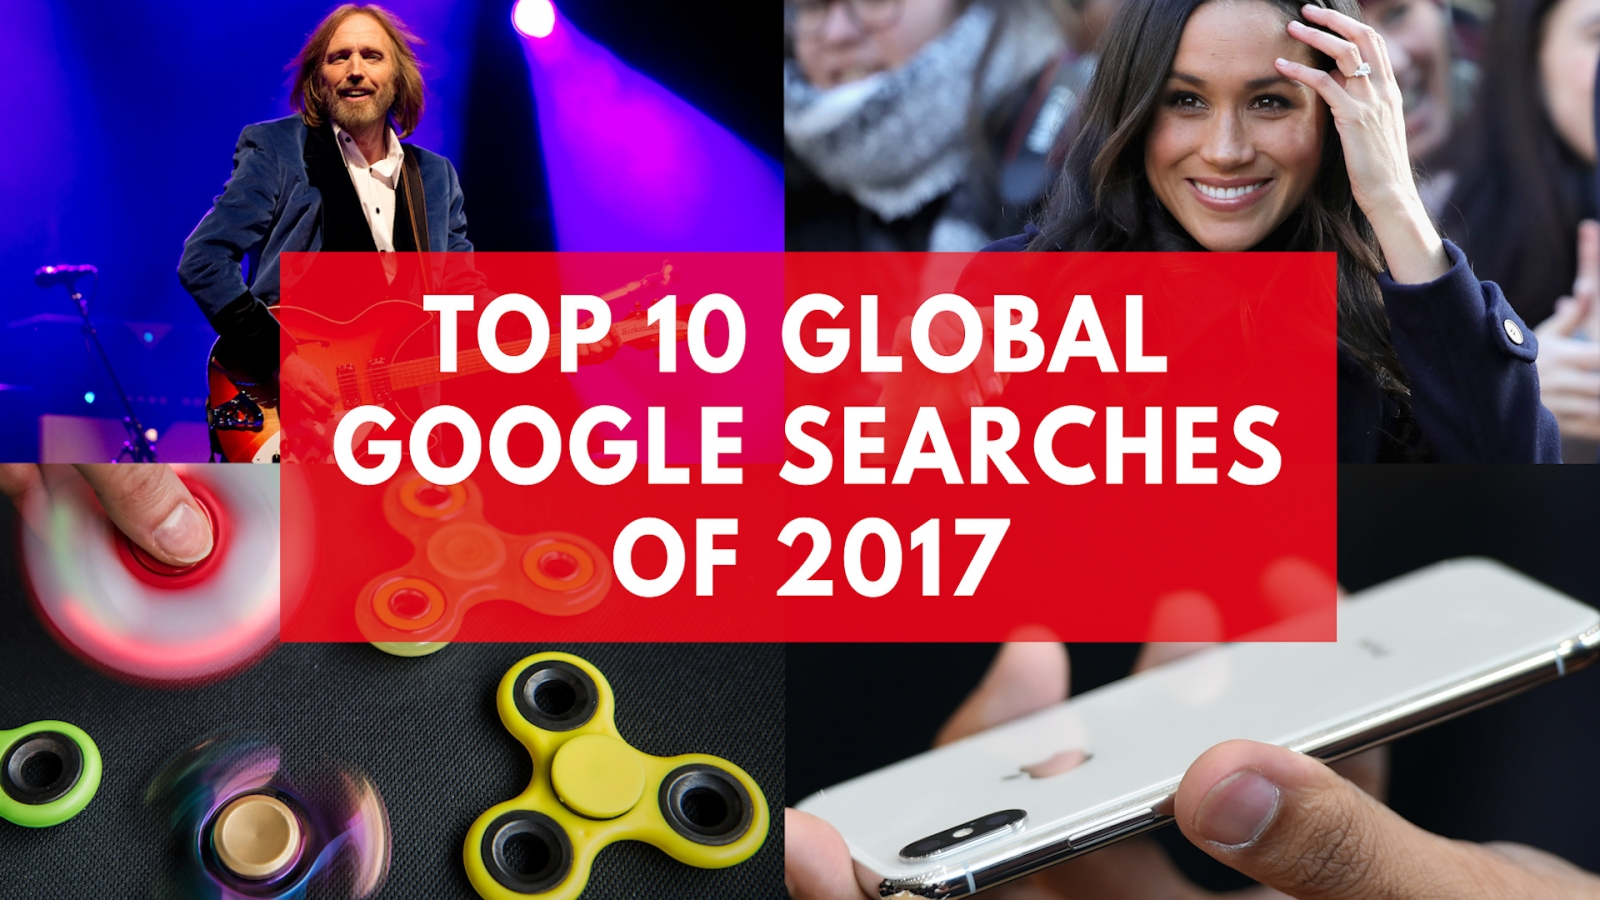 Top 10 global Google searches of 2017